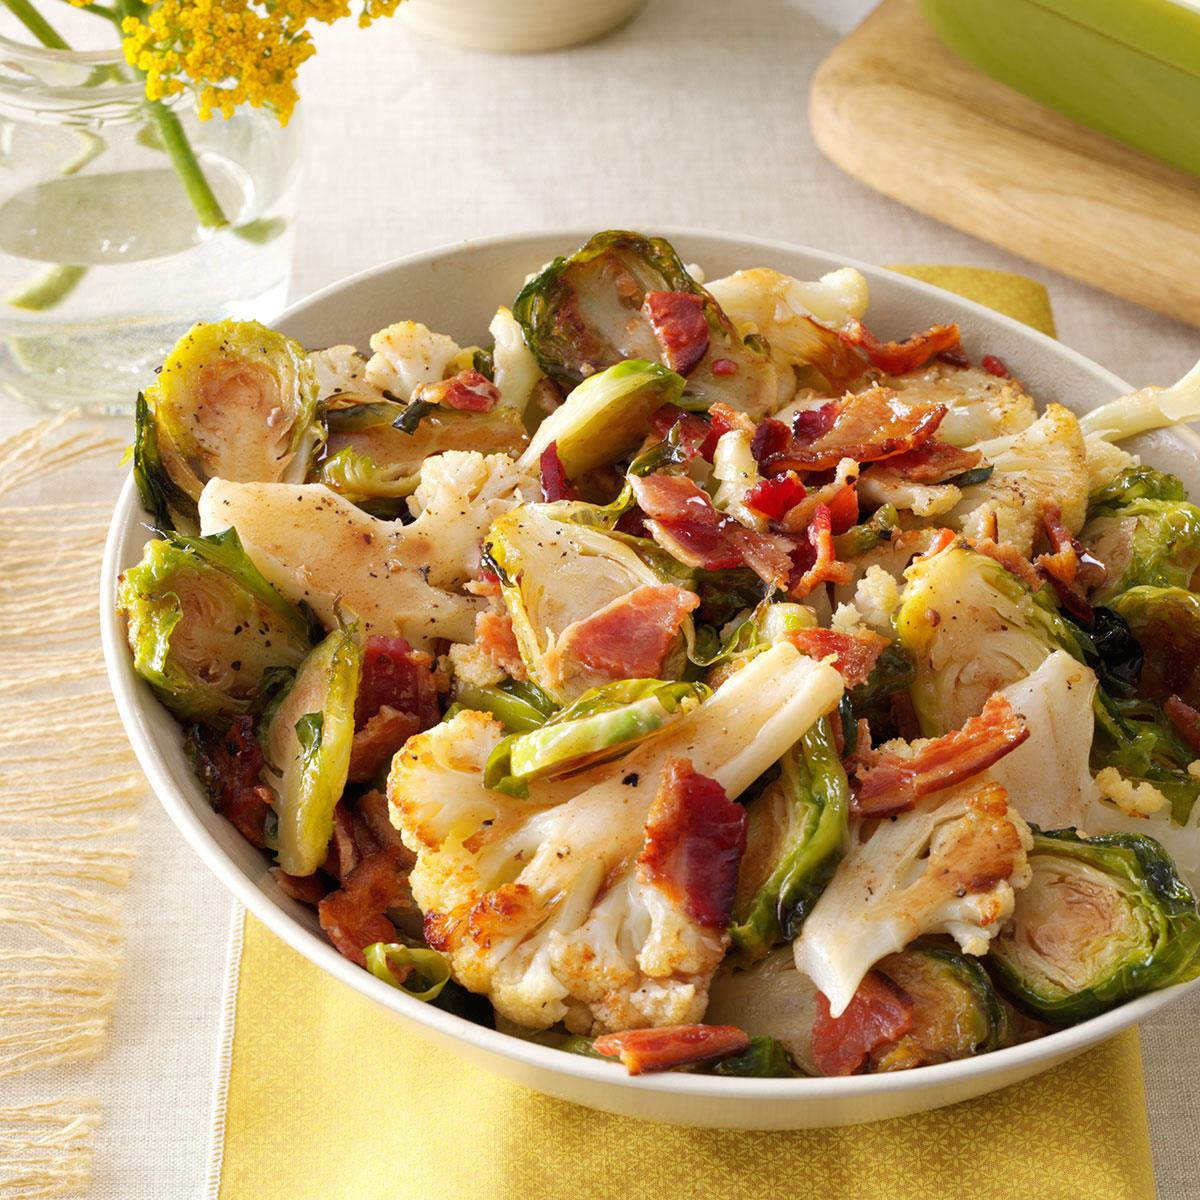 Roasted Cauliflower & Brussels Sprouts with Bacon